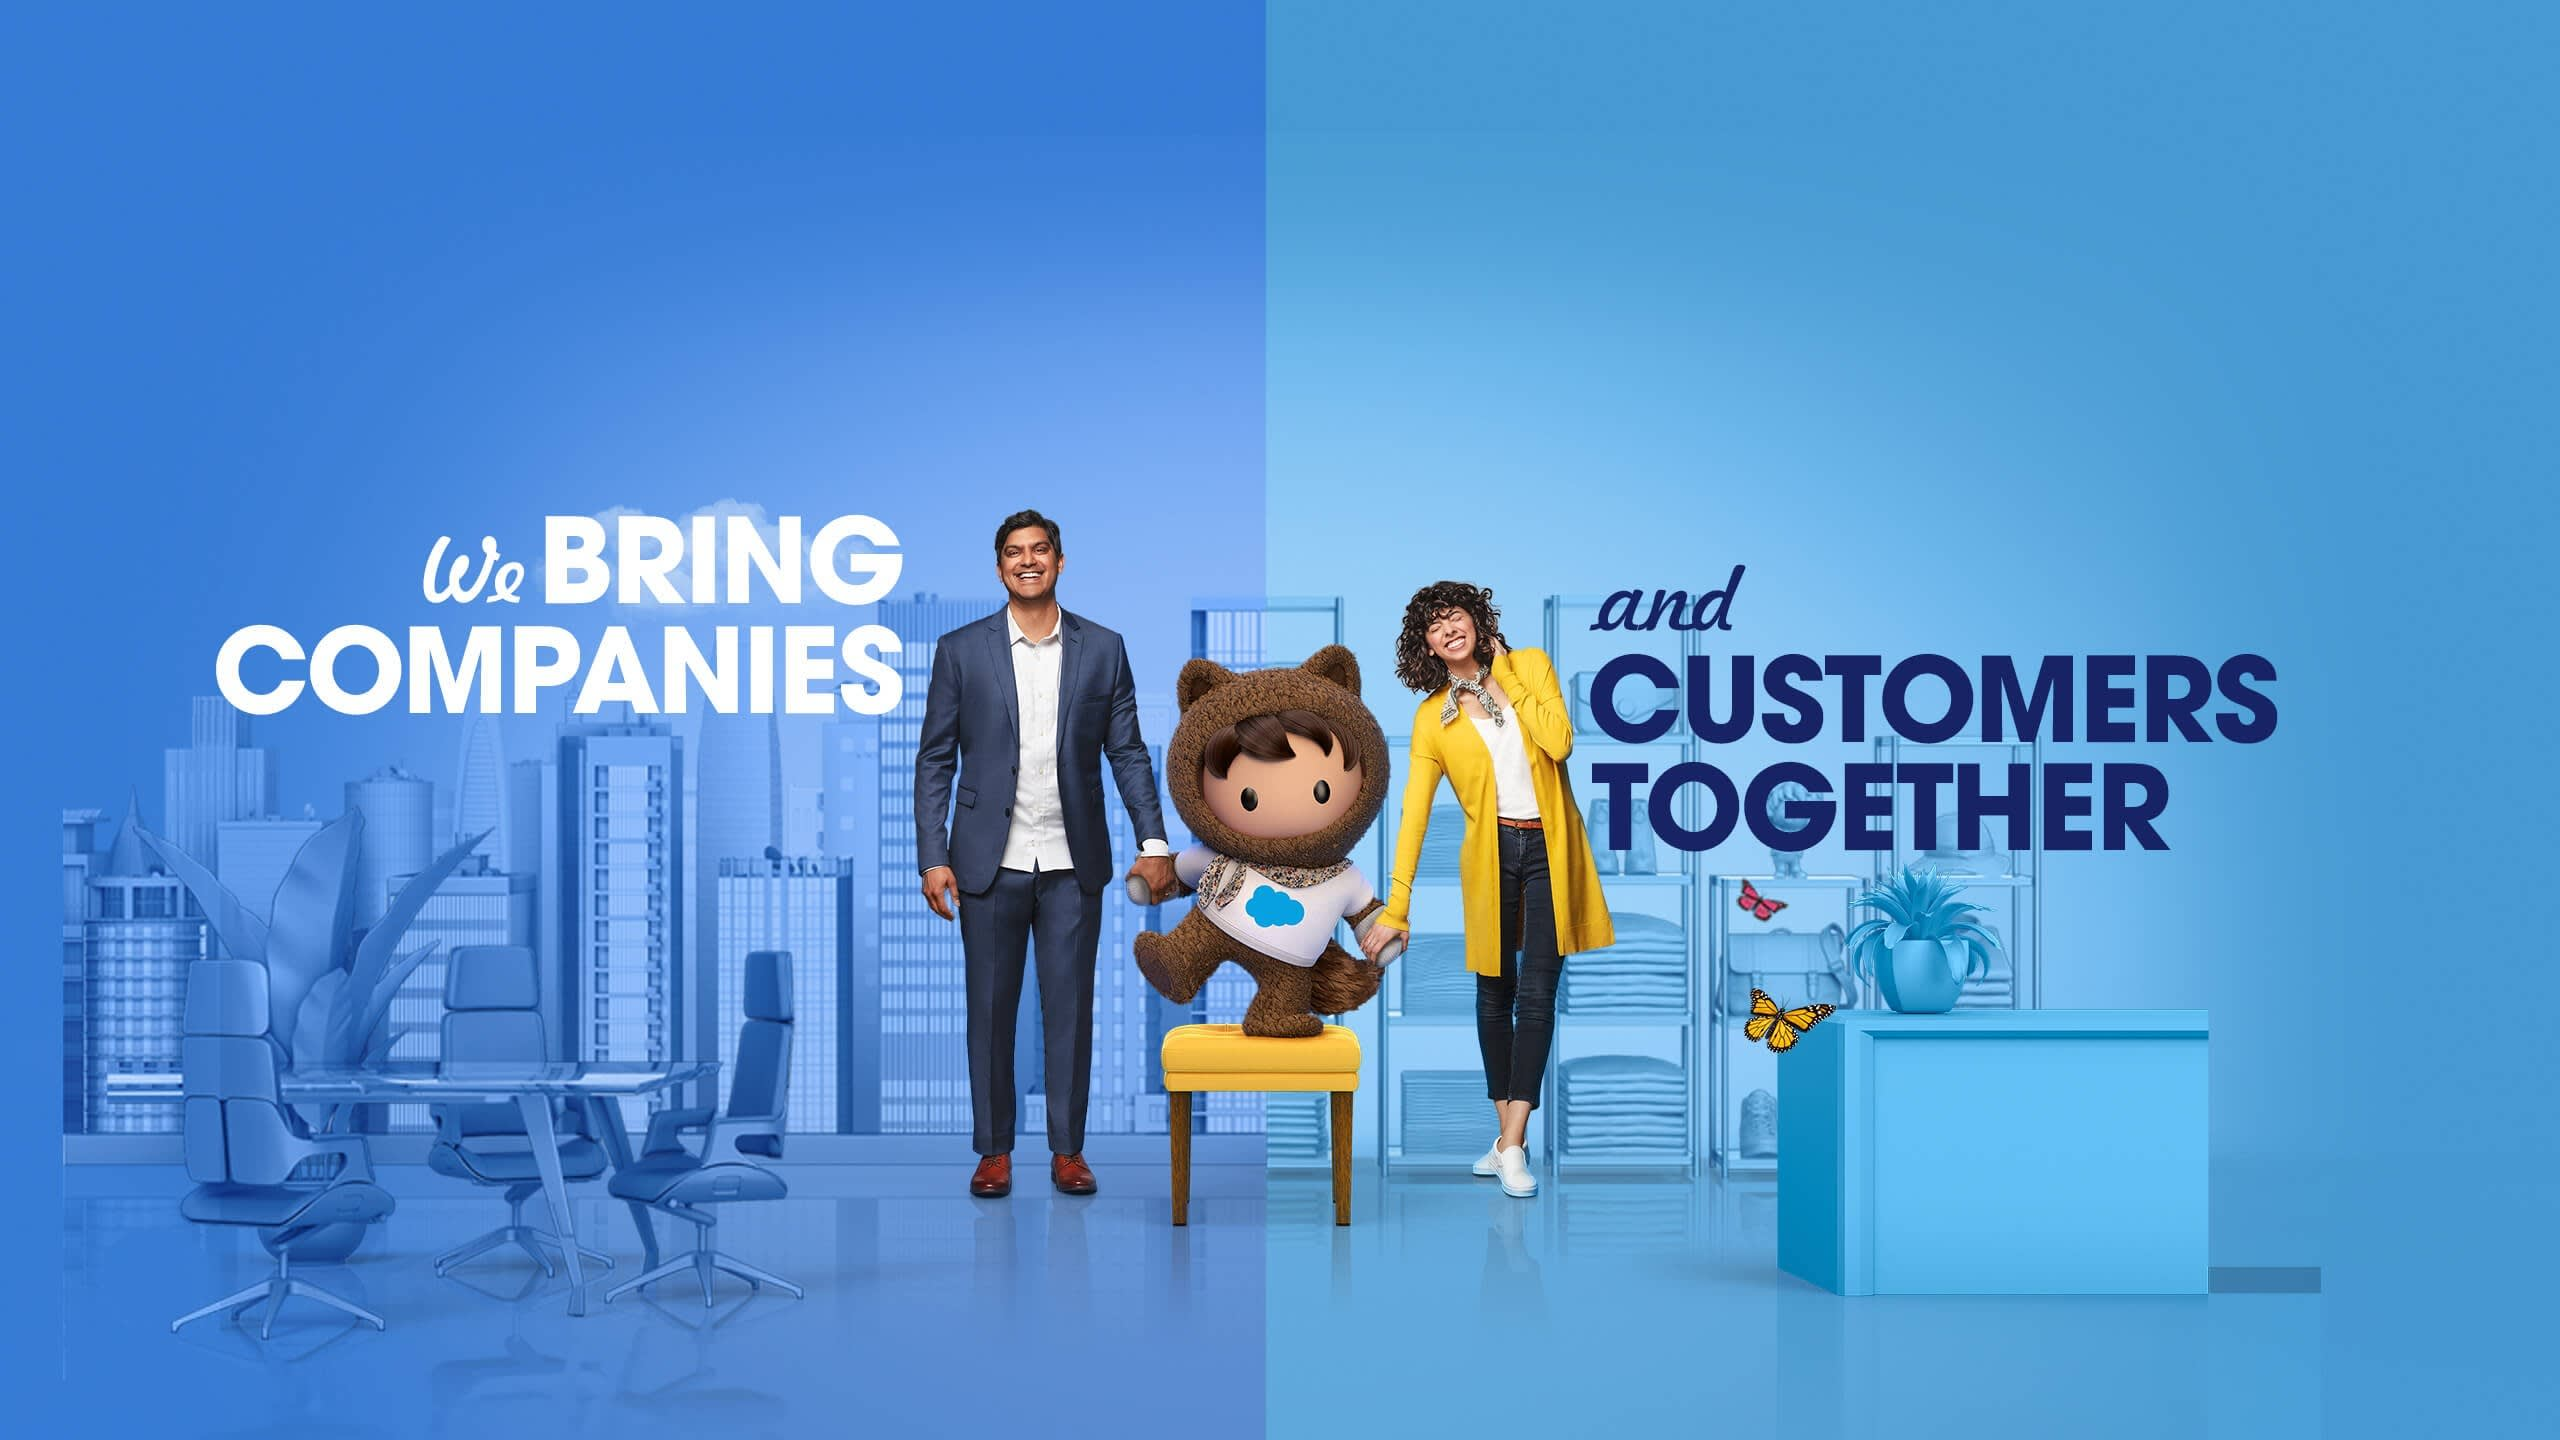 Salesforce mascot Astro standing between a businessman and a customer and holding the hand of each.